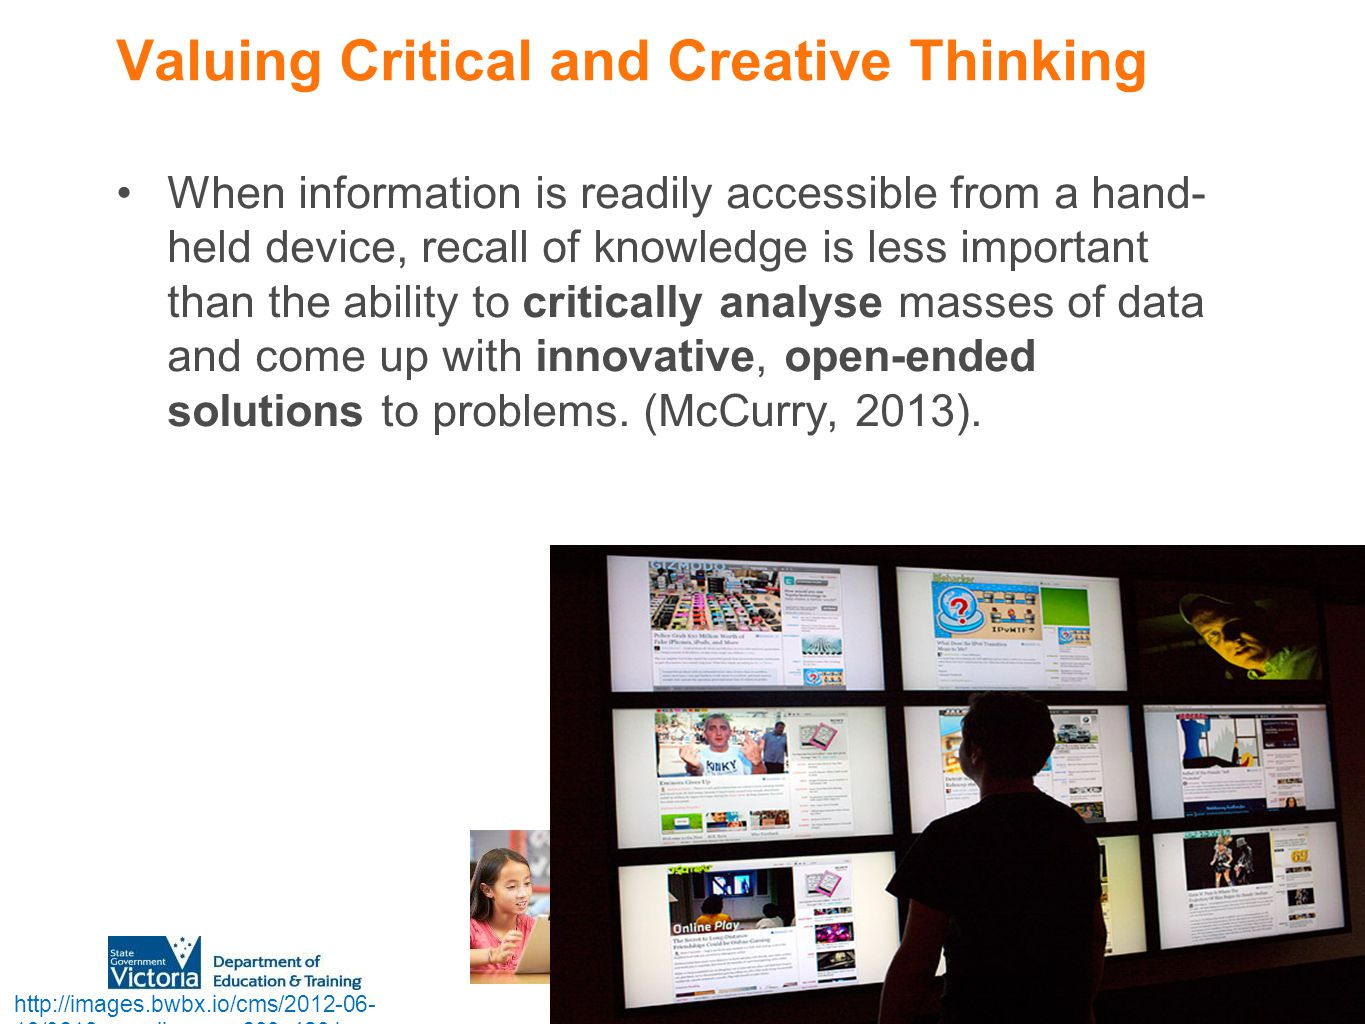 Valuing Critical and Creative Thinking